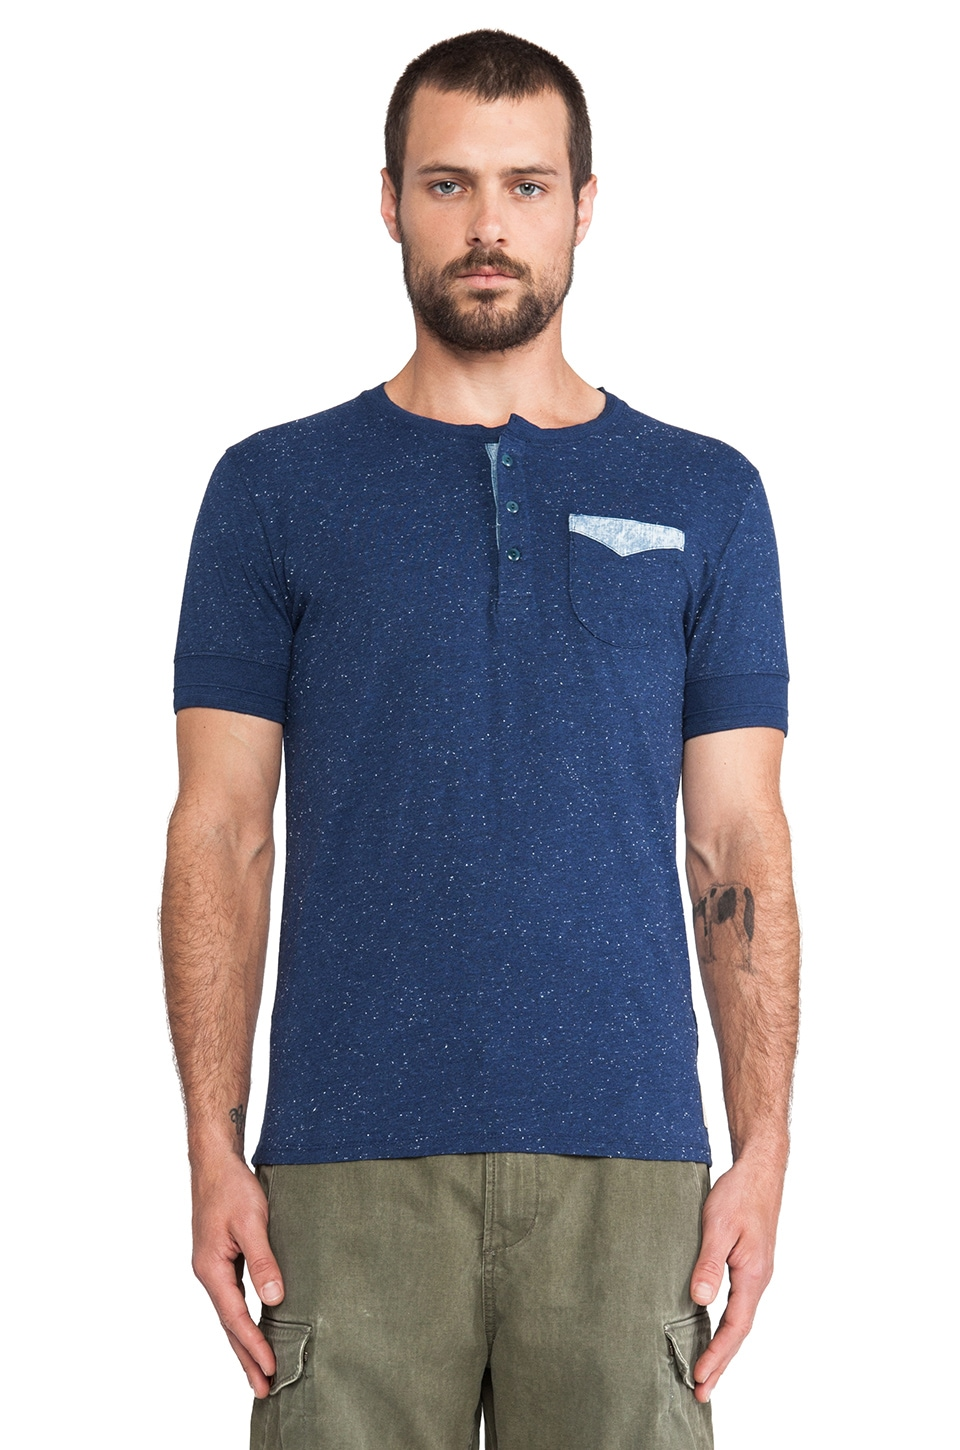 Scotch & Soda Denim Short sleeve Grandad Tee w/ Chunky Naps in Indigo